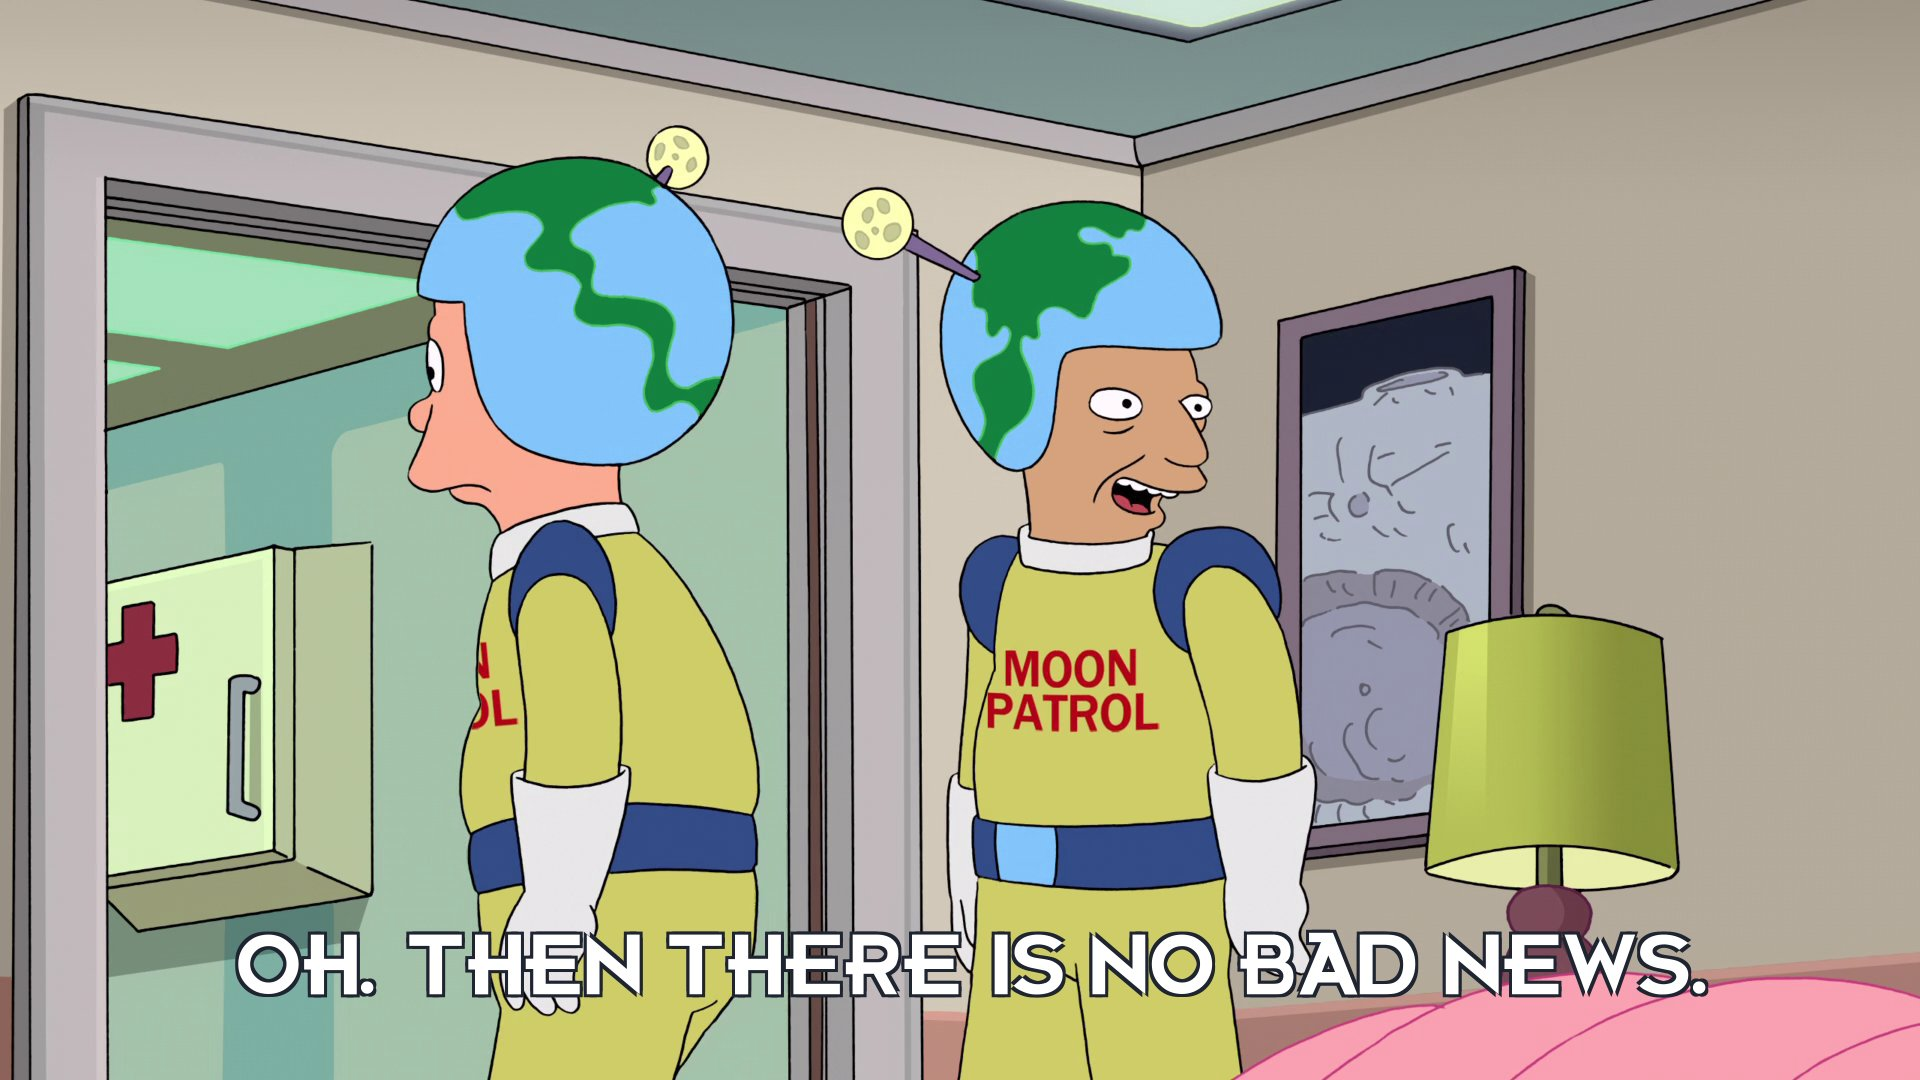 Moon Patrolman: Oh. Then there is no bad news.